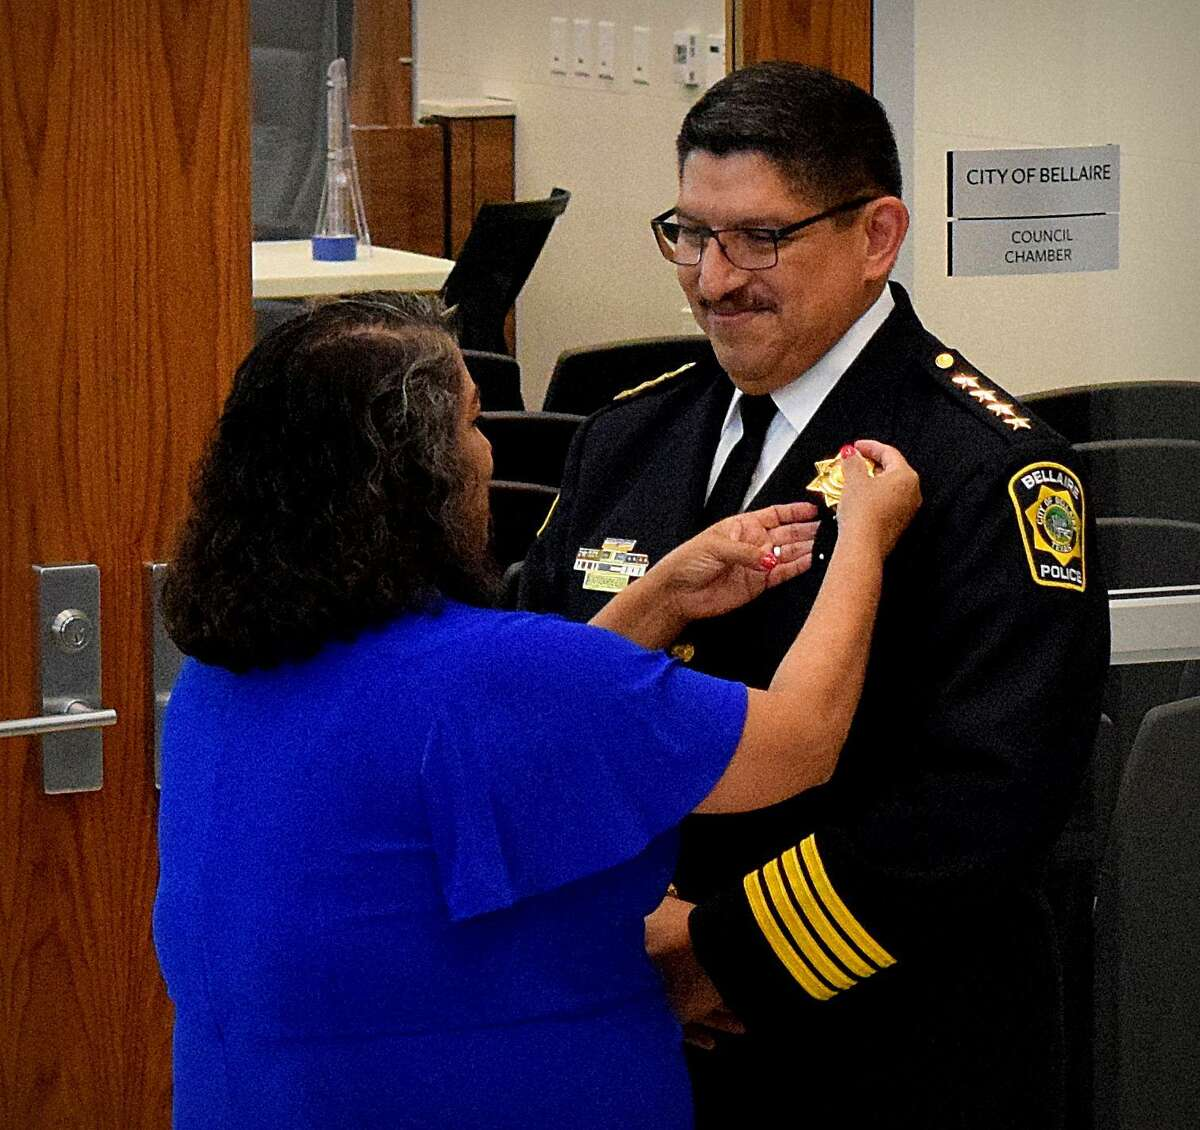 """Onesimo """"Mo"""" Lopez Jr.'s wife Faby pins the Chief's badge on him following his swearing in as the City of Bellaire's new Chief of Police at a ceremony on Aug. 2."""